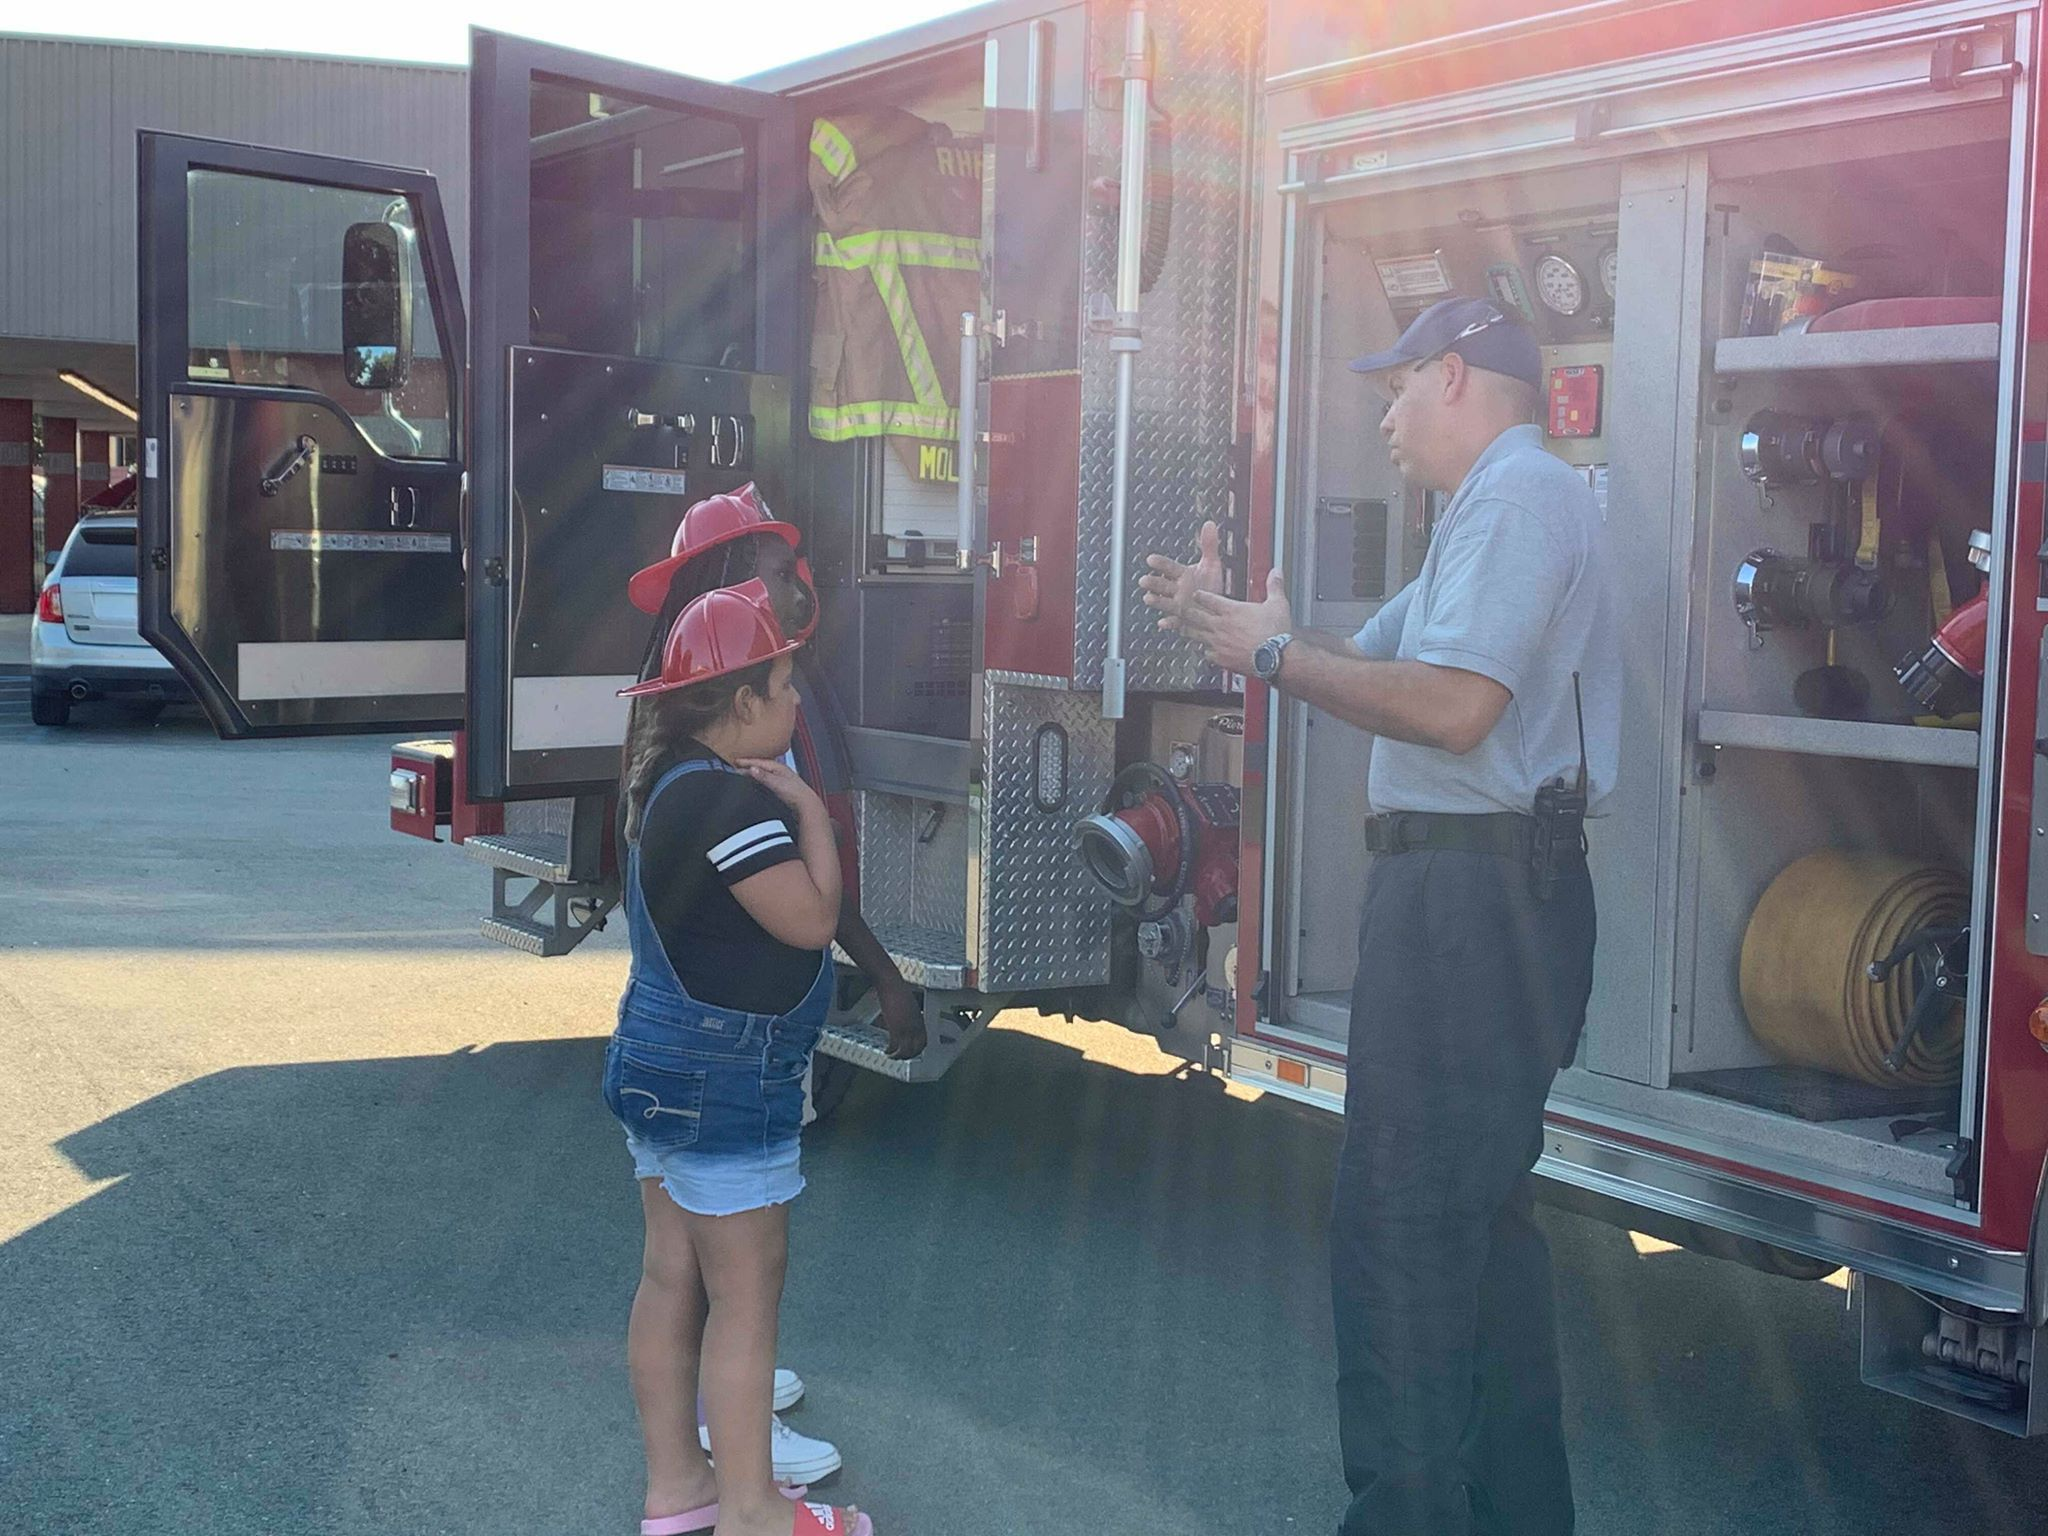 A man standing next to a firefighter talks to two kids